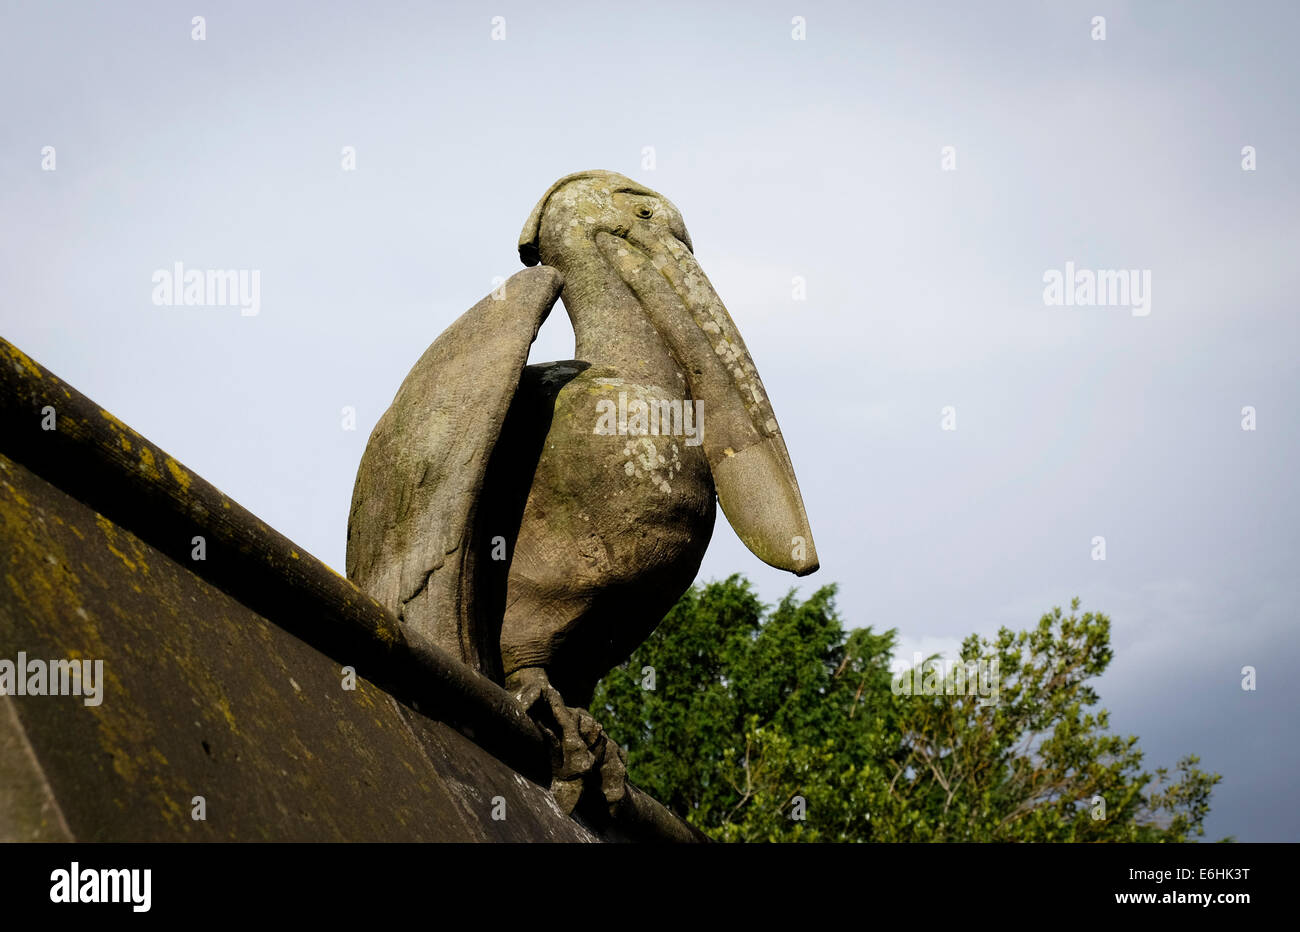 The sculpture of a Pelican on the Animal Wall at Cardiff Castle. - Stock Image